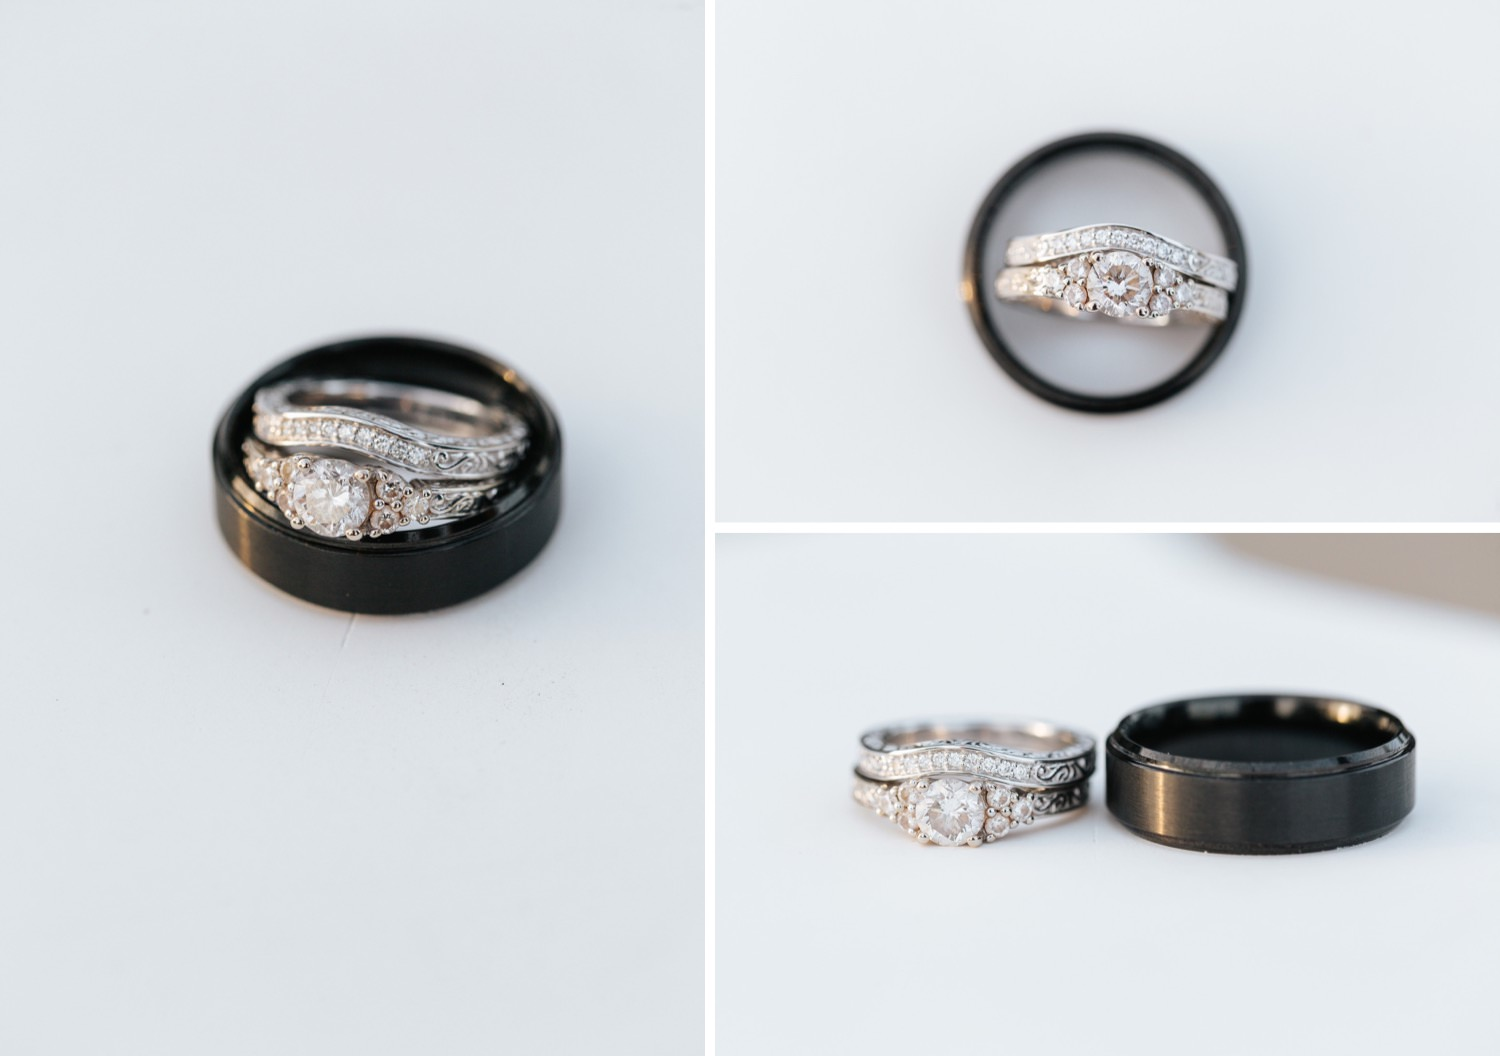 Bride and Groom Wedding Rings - Engagement Ring - Wedding Bands - https://brittneyhannonphotography.com